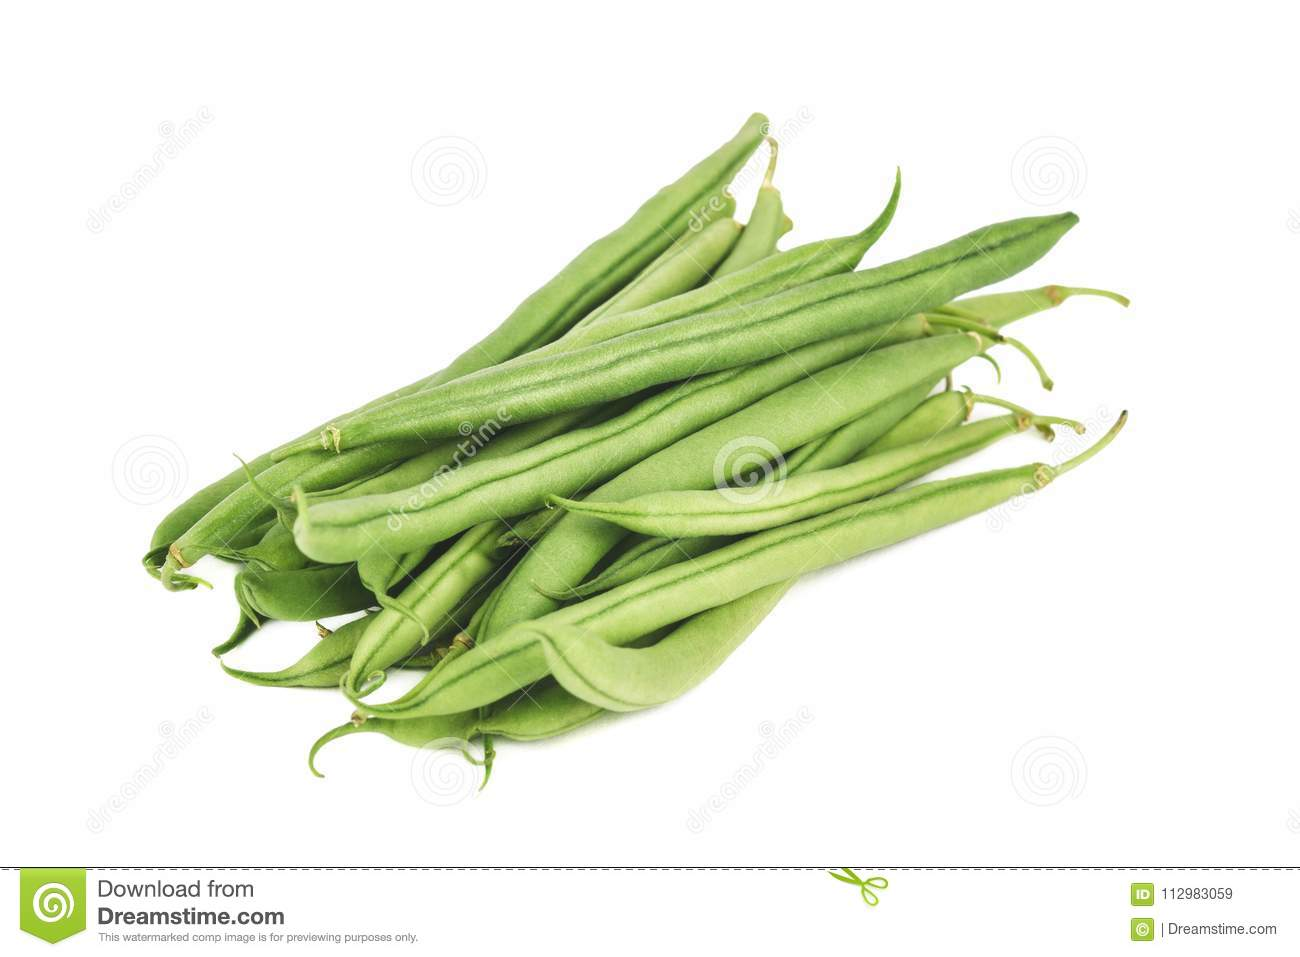 Portion of fresh green beans isolated on a white background